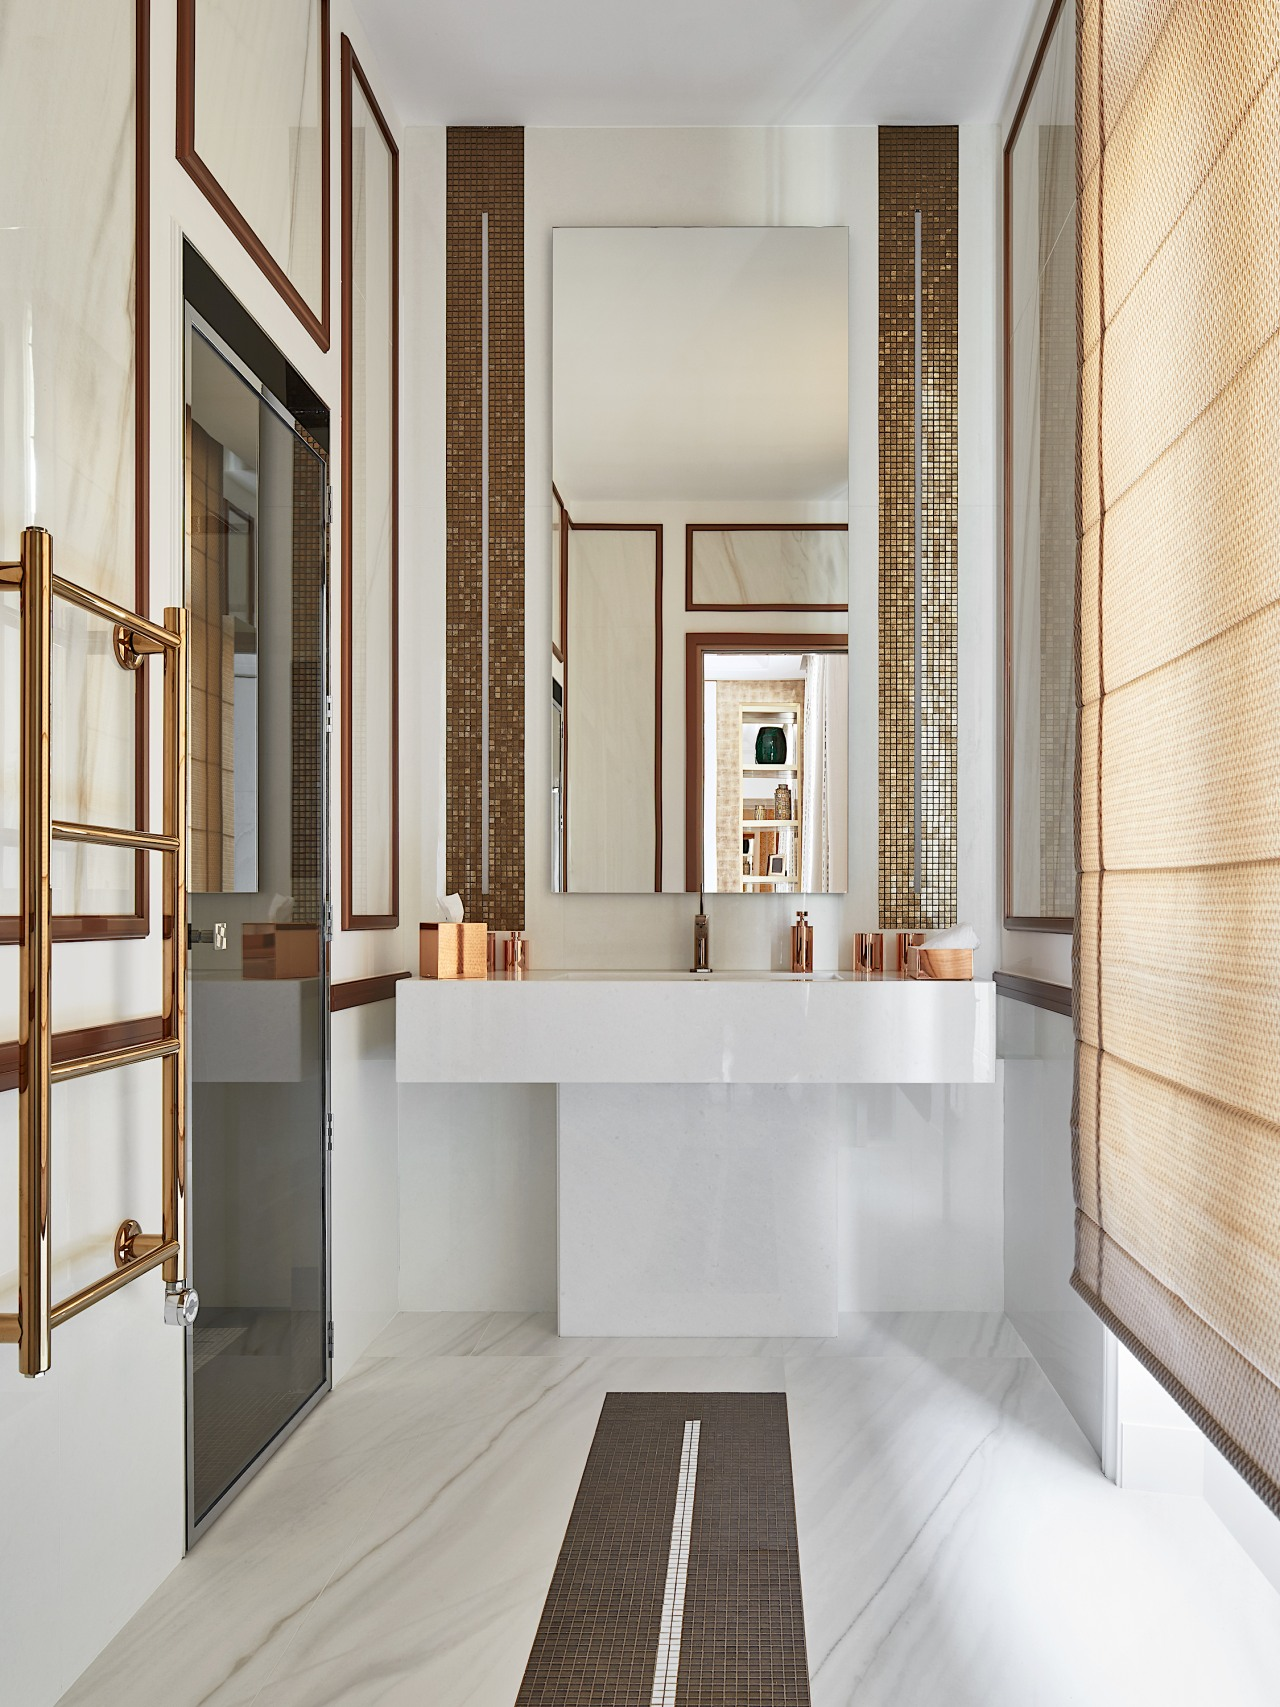 This bathroom celebrates a harmonic balance between marble gray